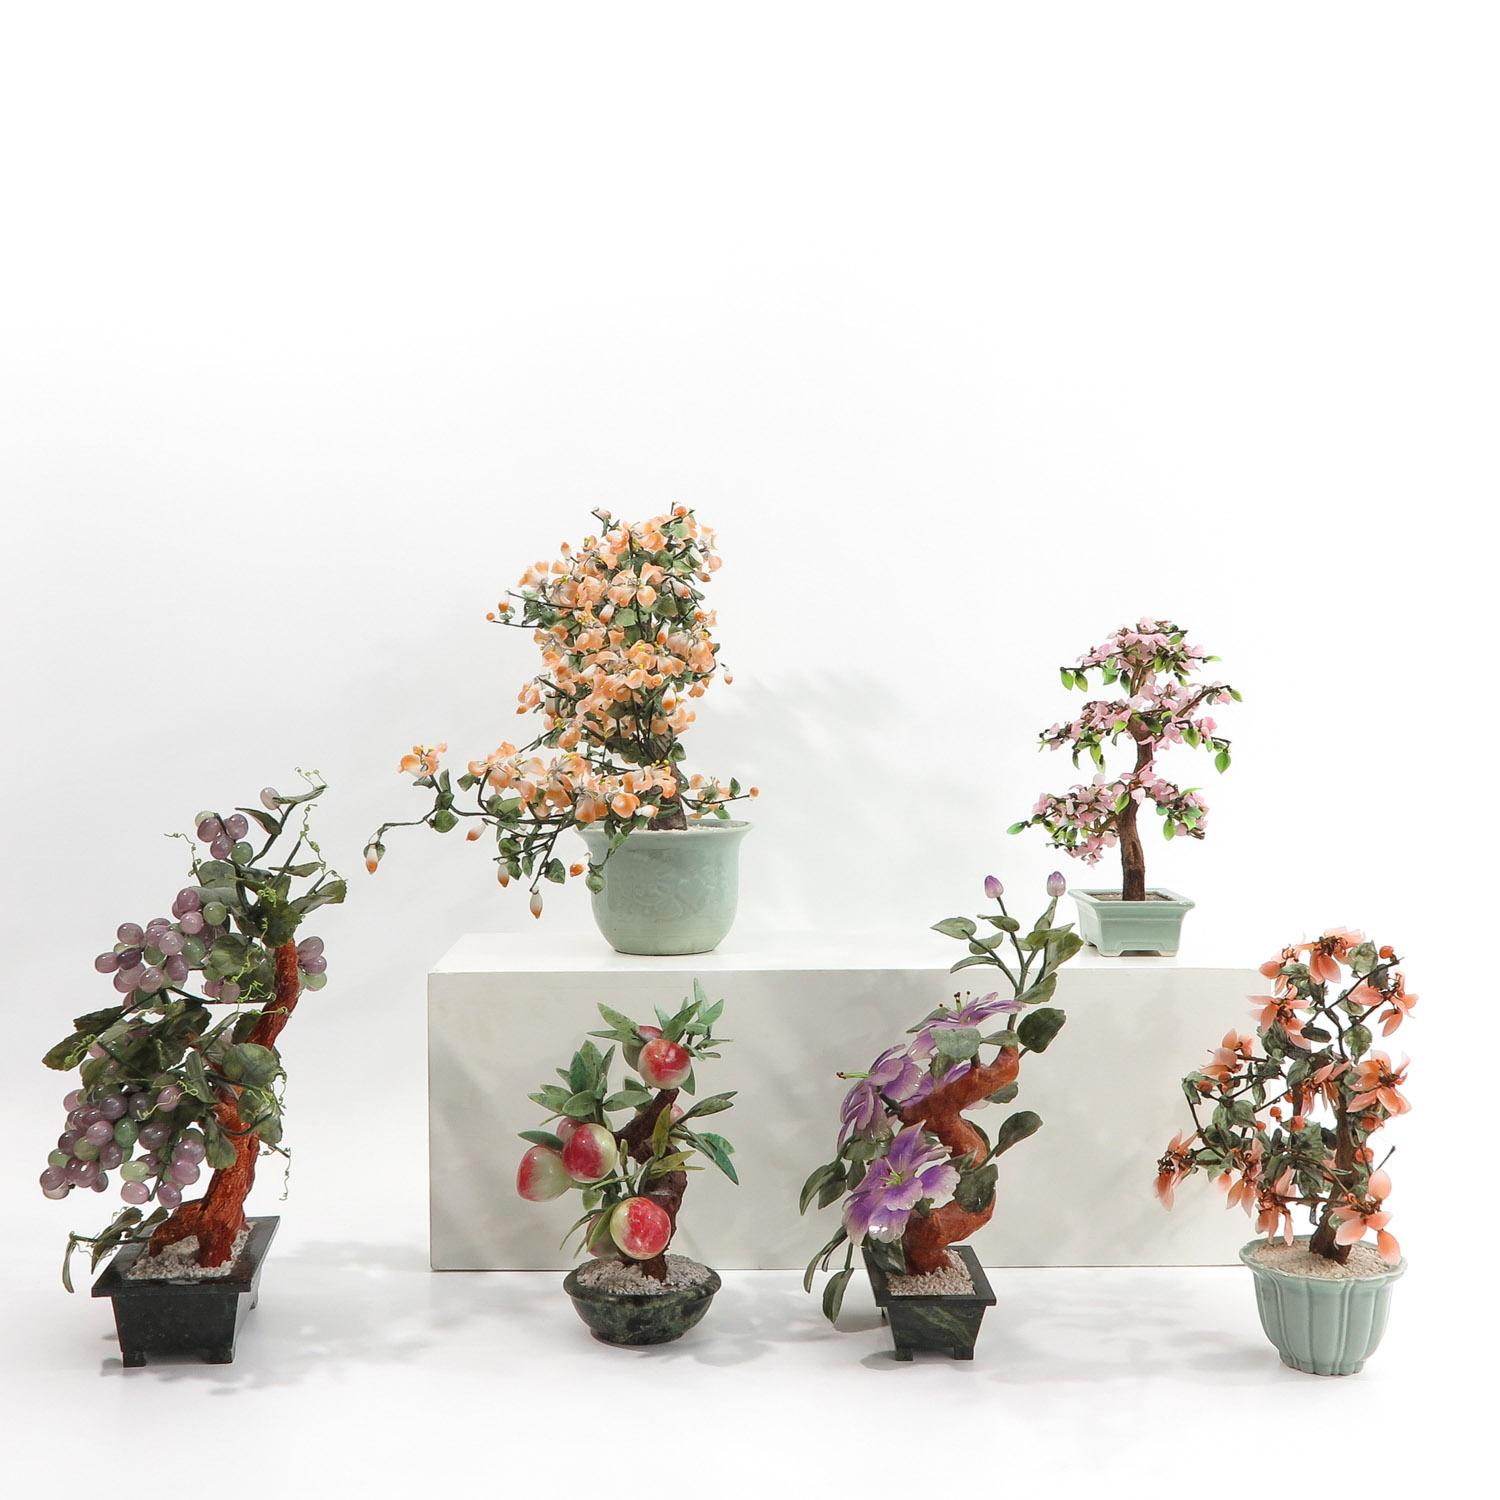 A Collection of Floral Arrangements - Image 2 of 10